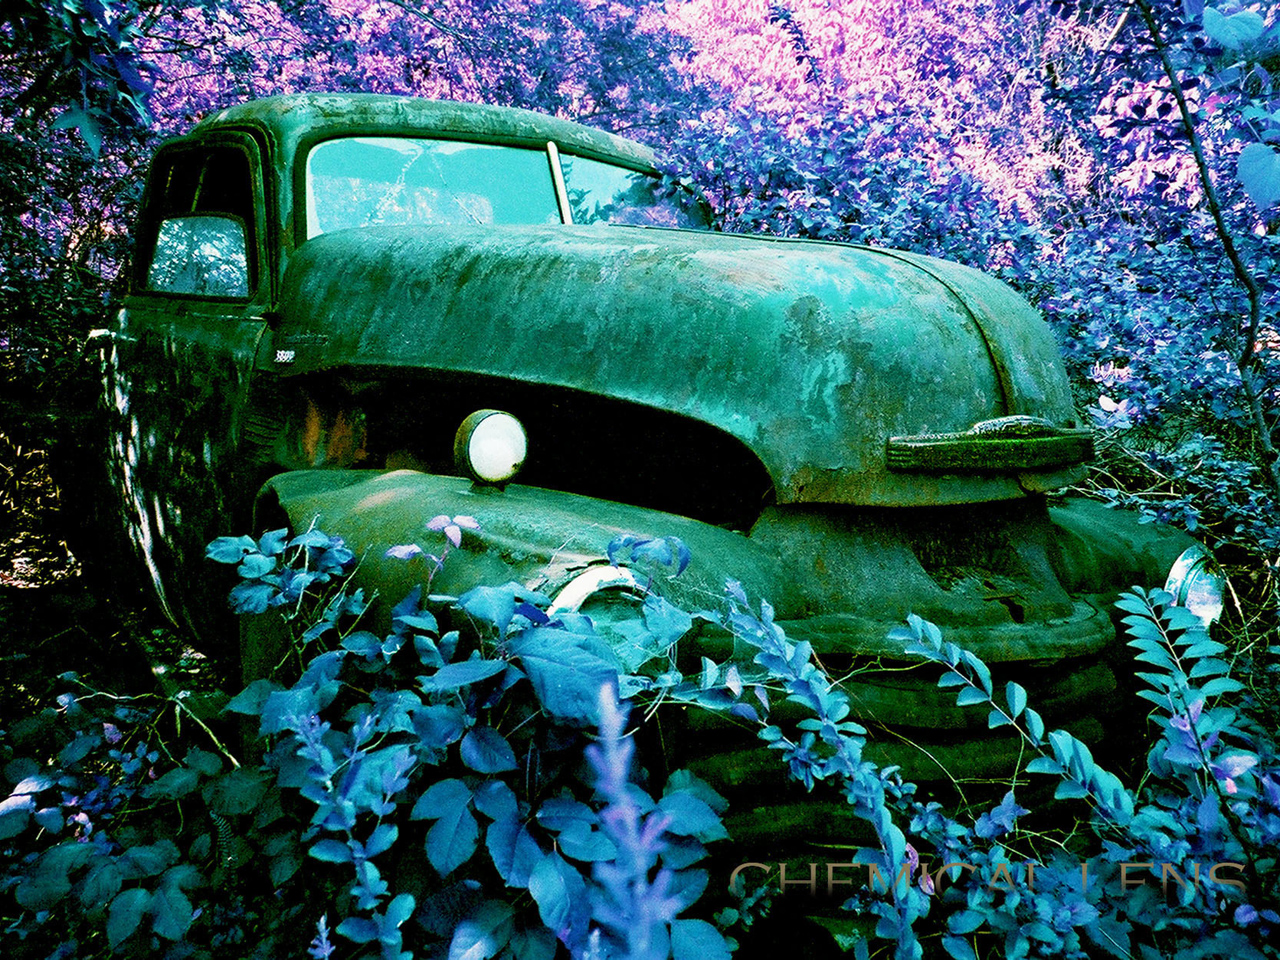 Sell Junk Cars >> Rotting Art - A museum of junked cars - Pictures - CBS News